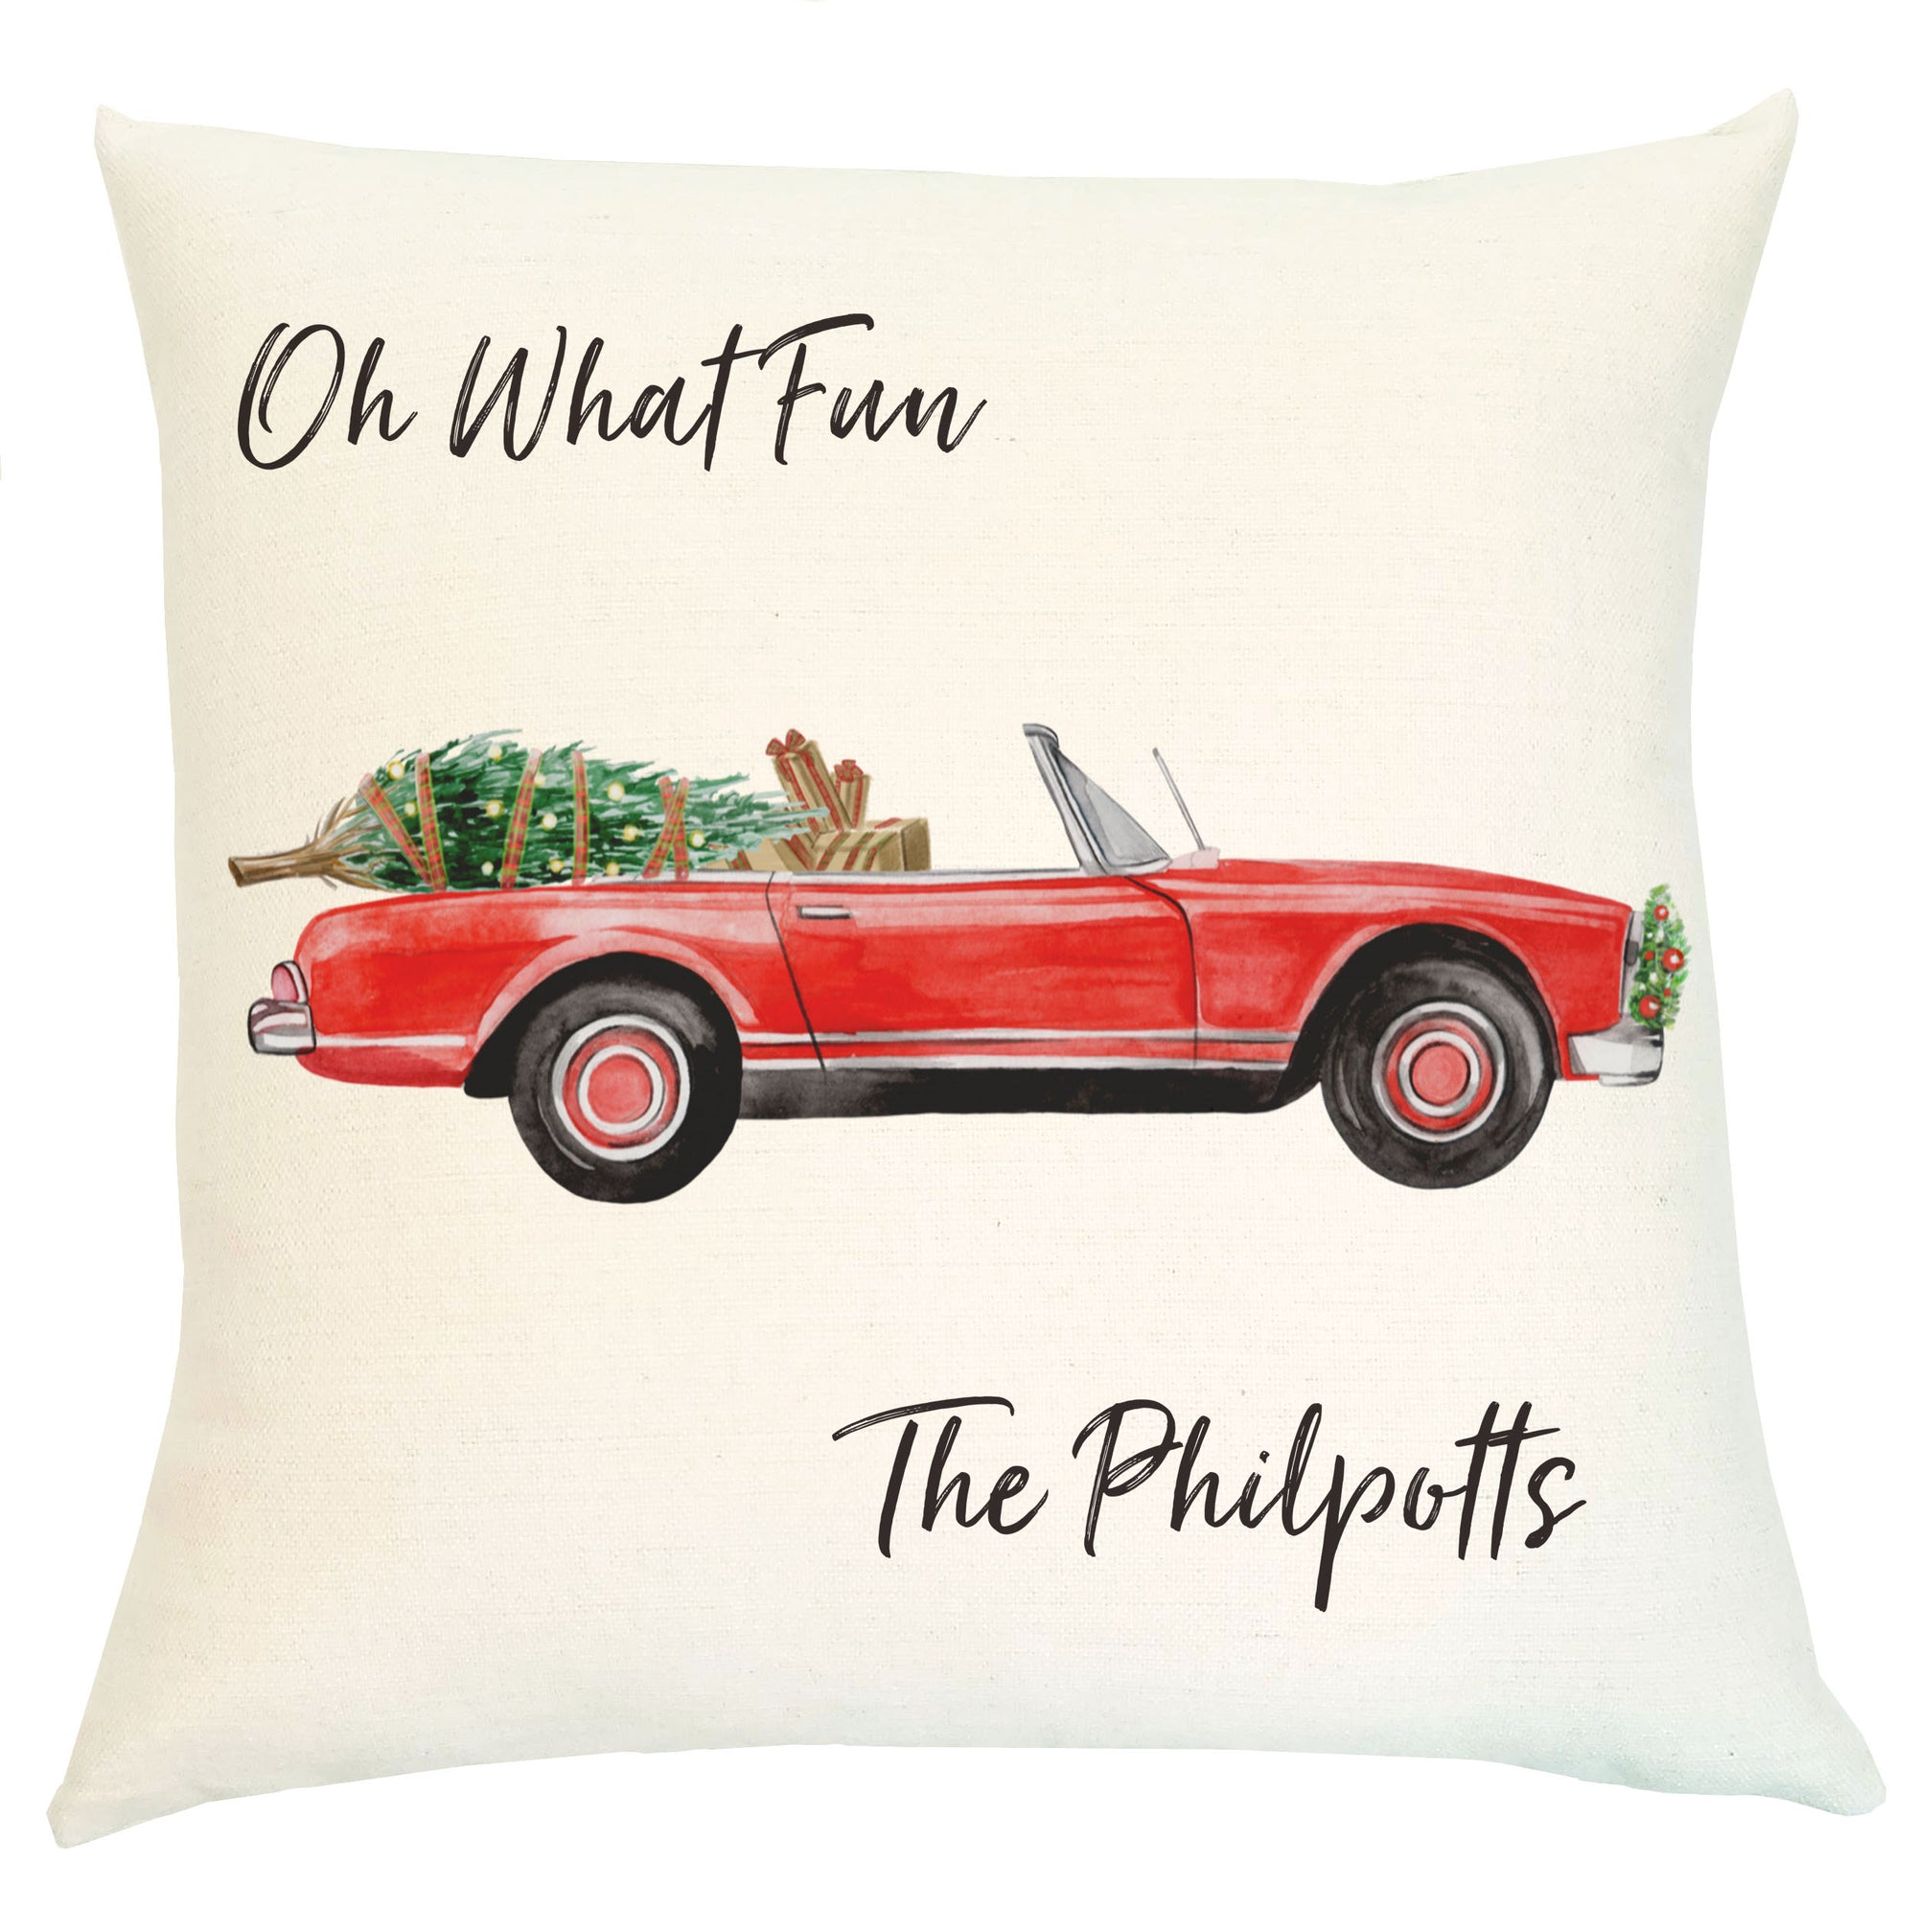 Pillow Personalized - Red Convertible Holiday